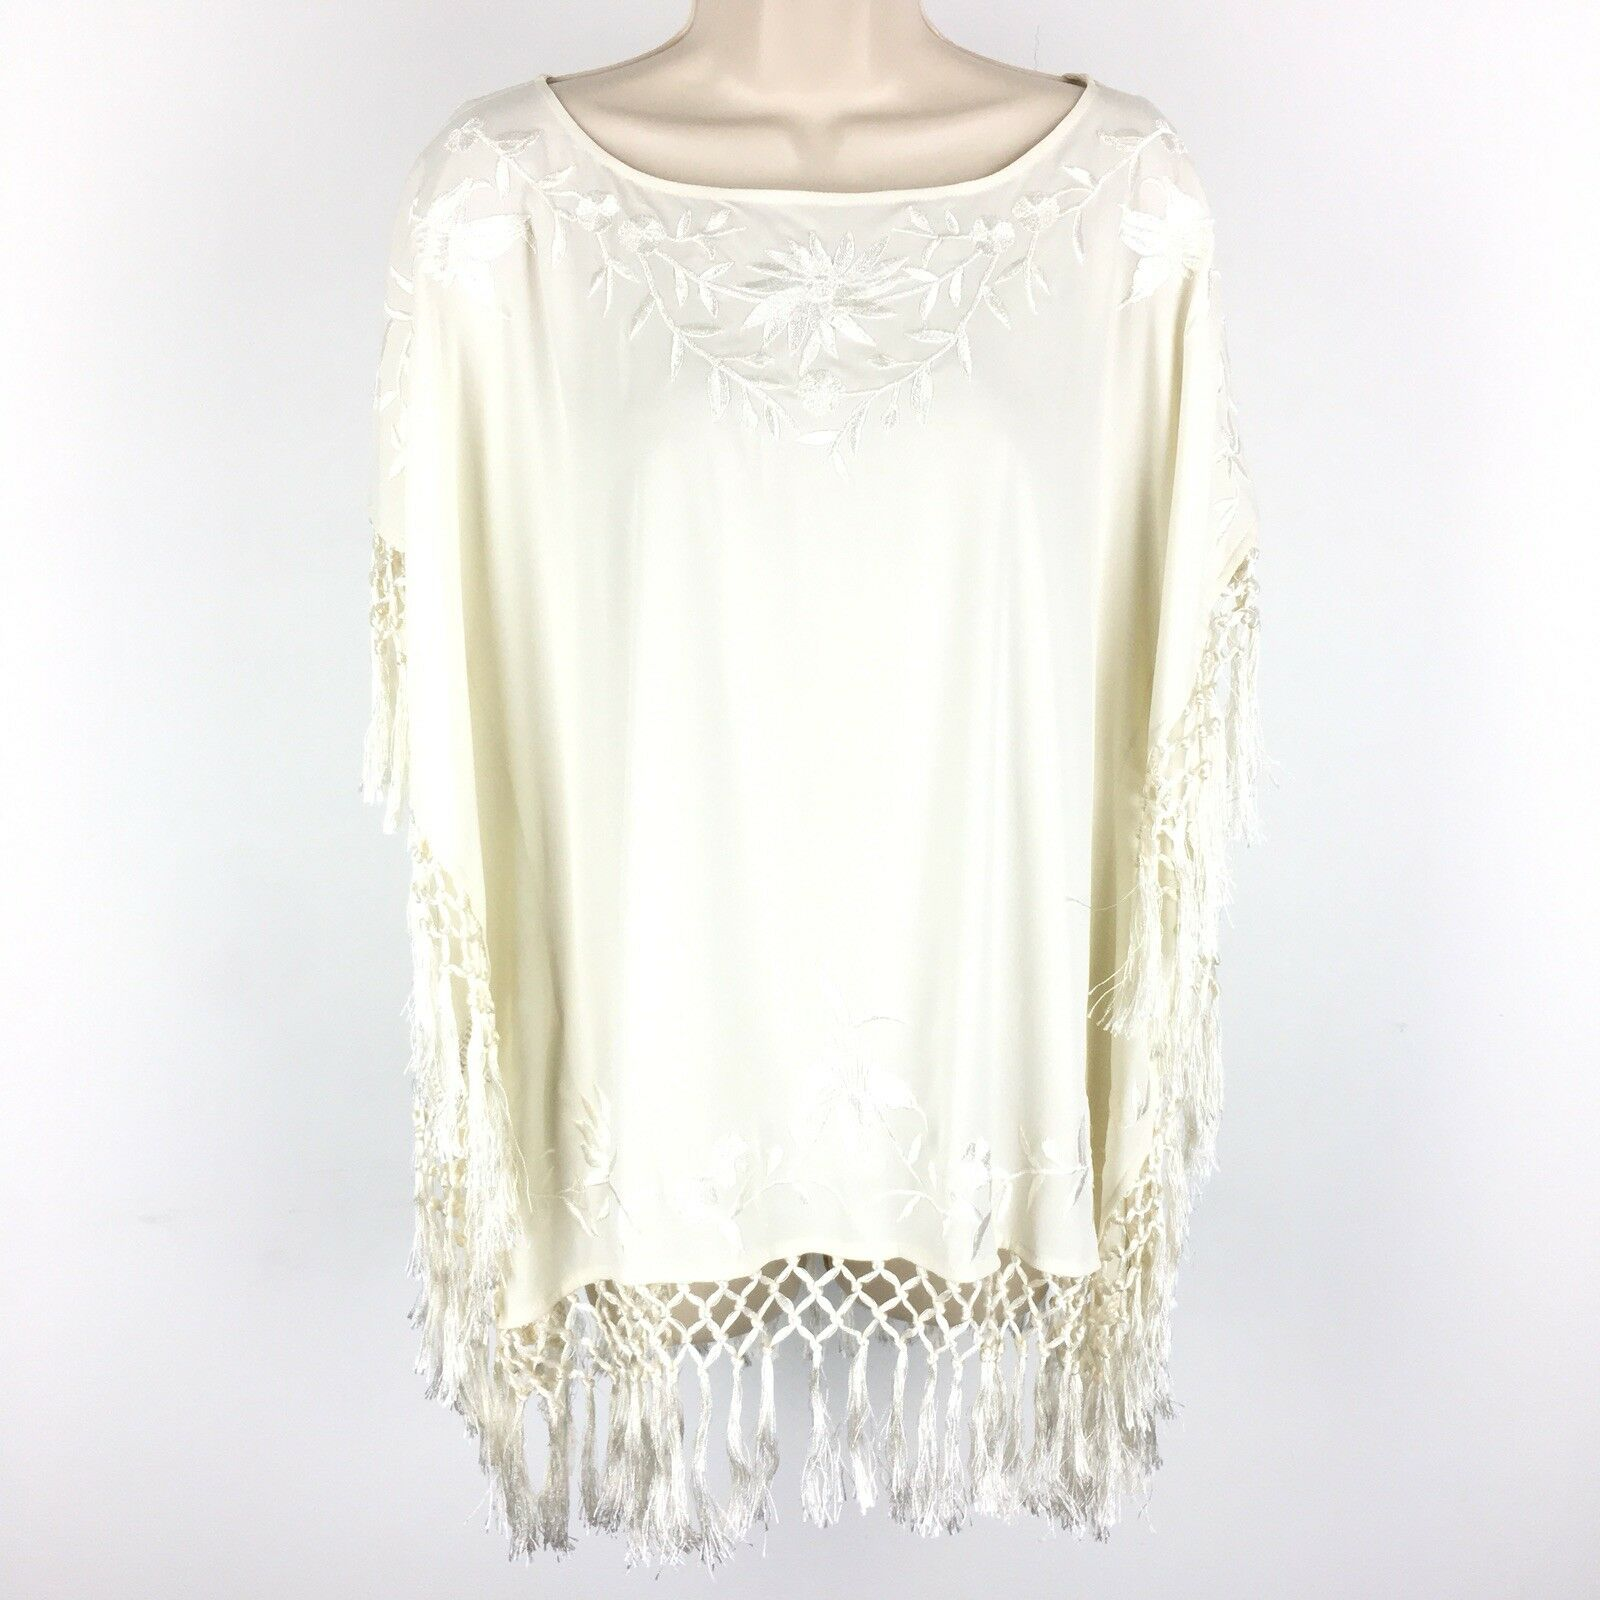 French Connection Square Raquel Top Blouse Small 4 Cream Embroiderot Fringe